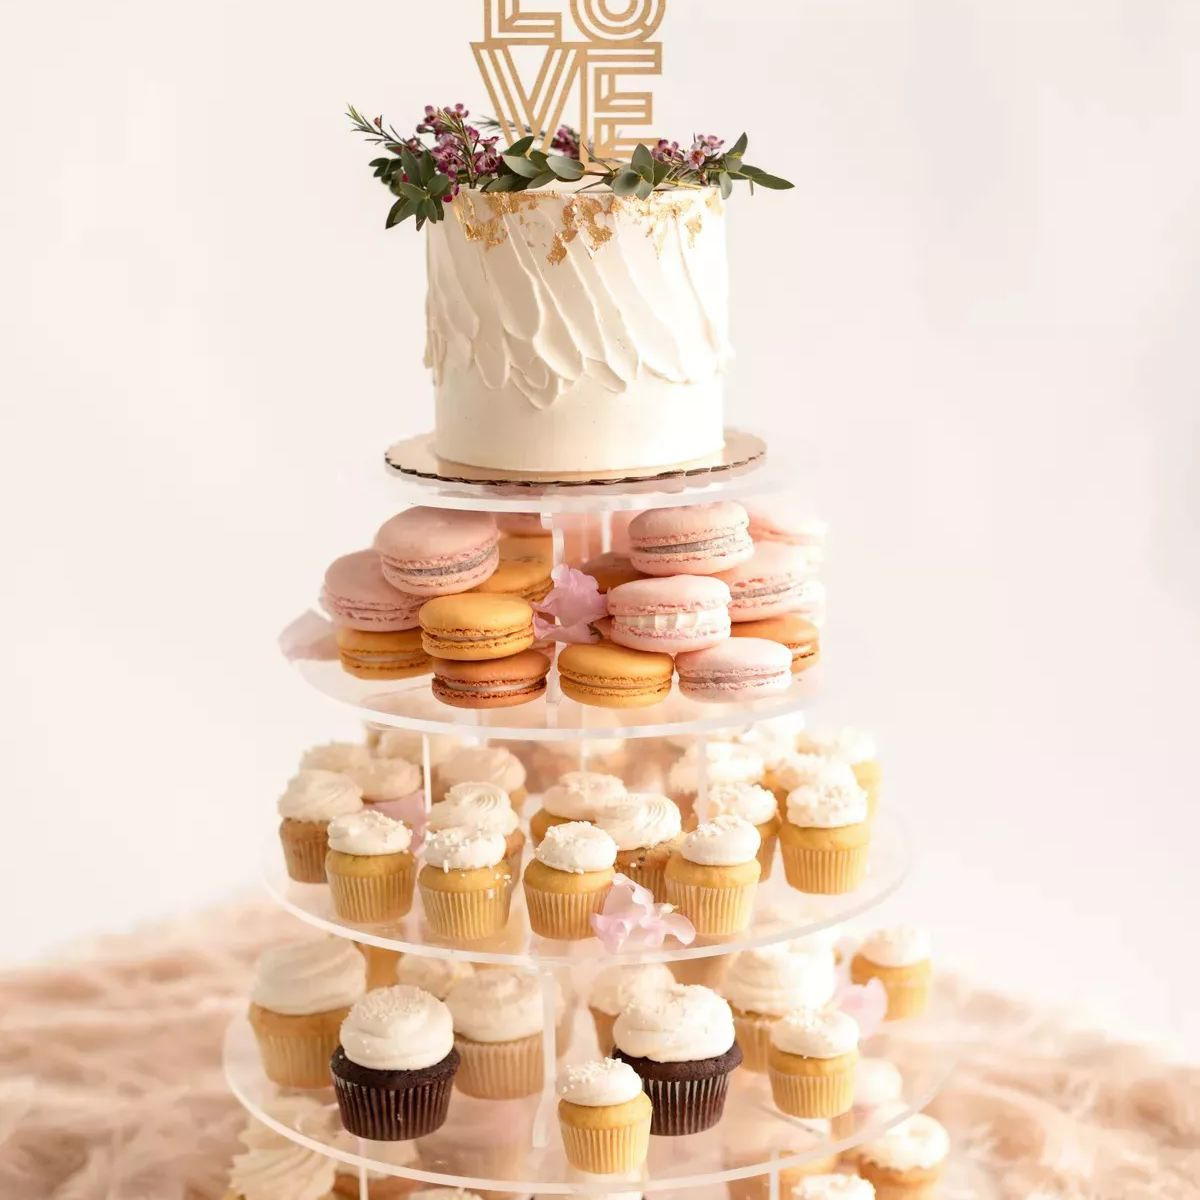 display of sweets